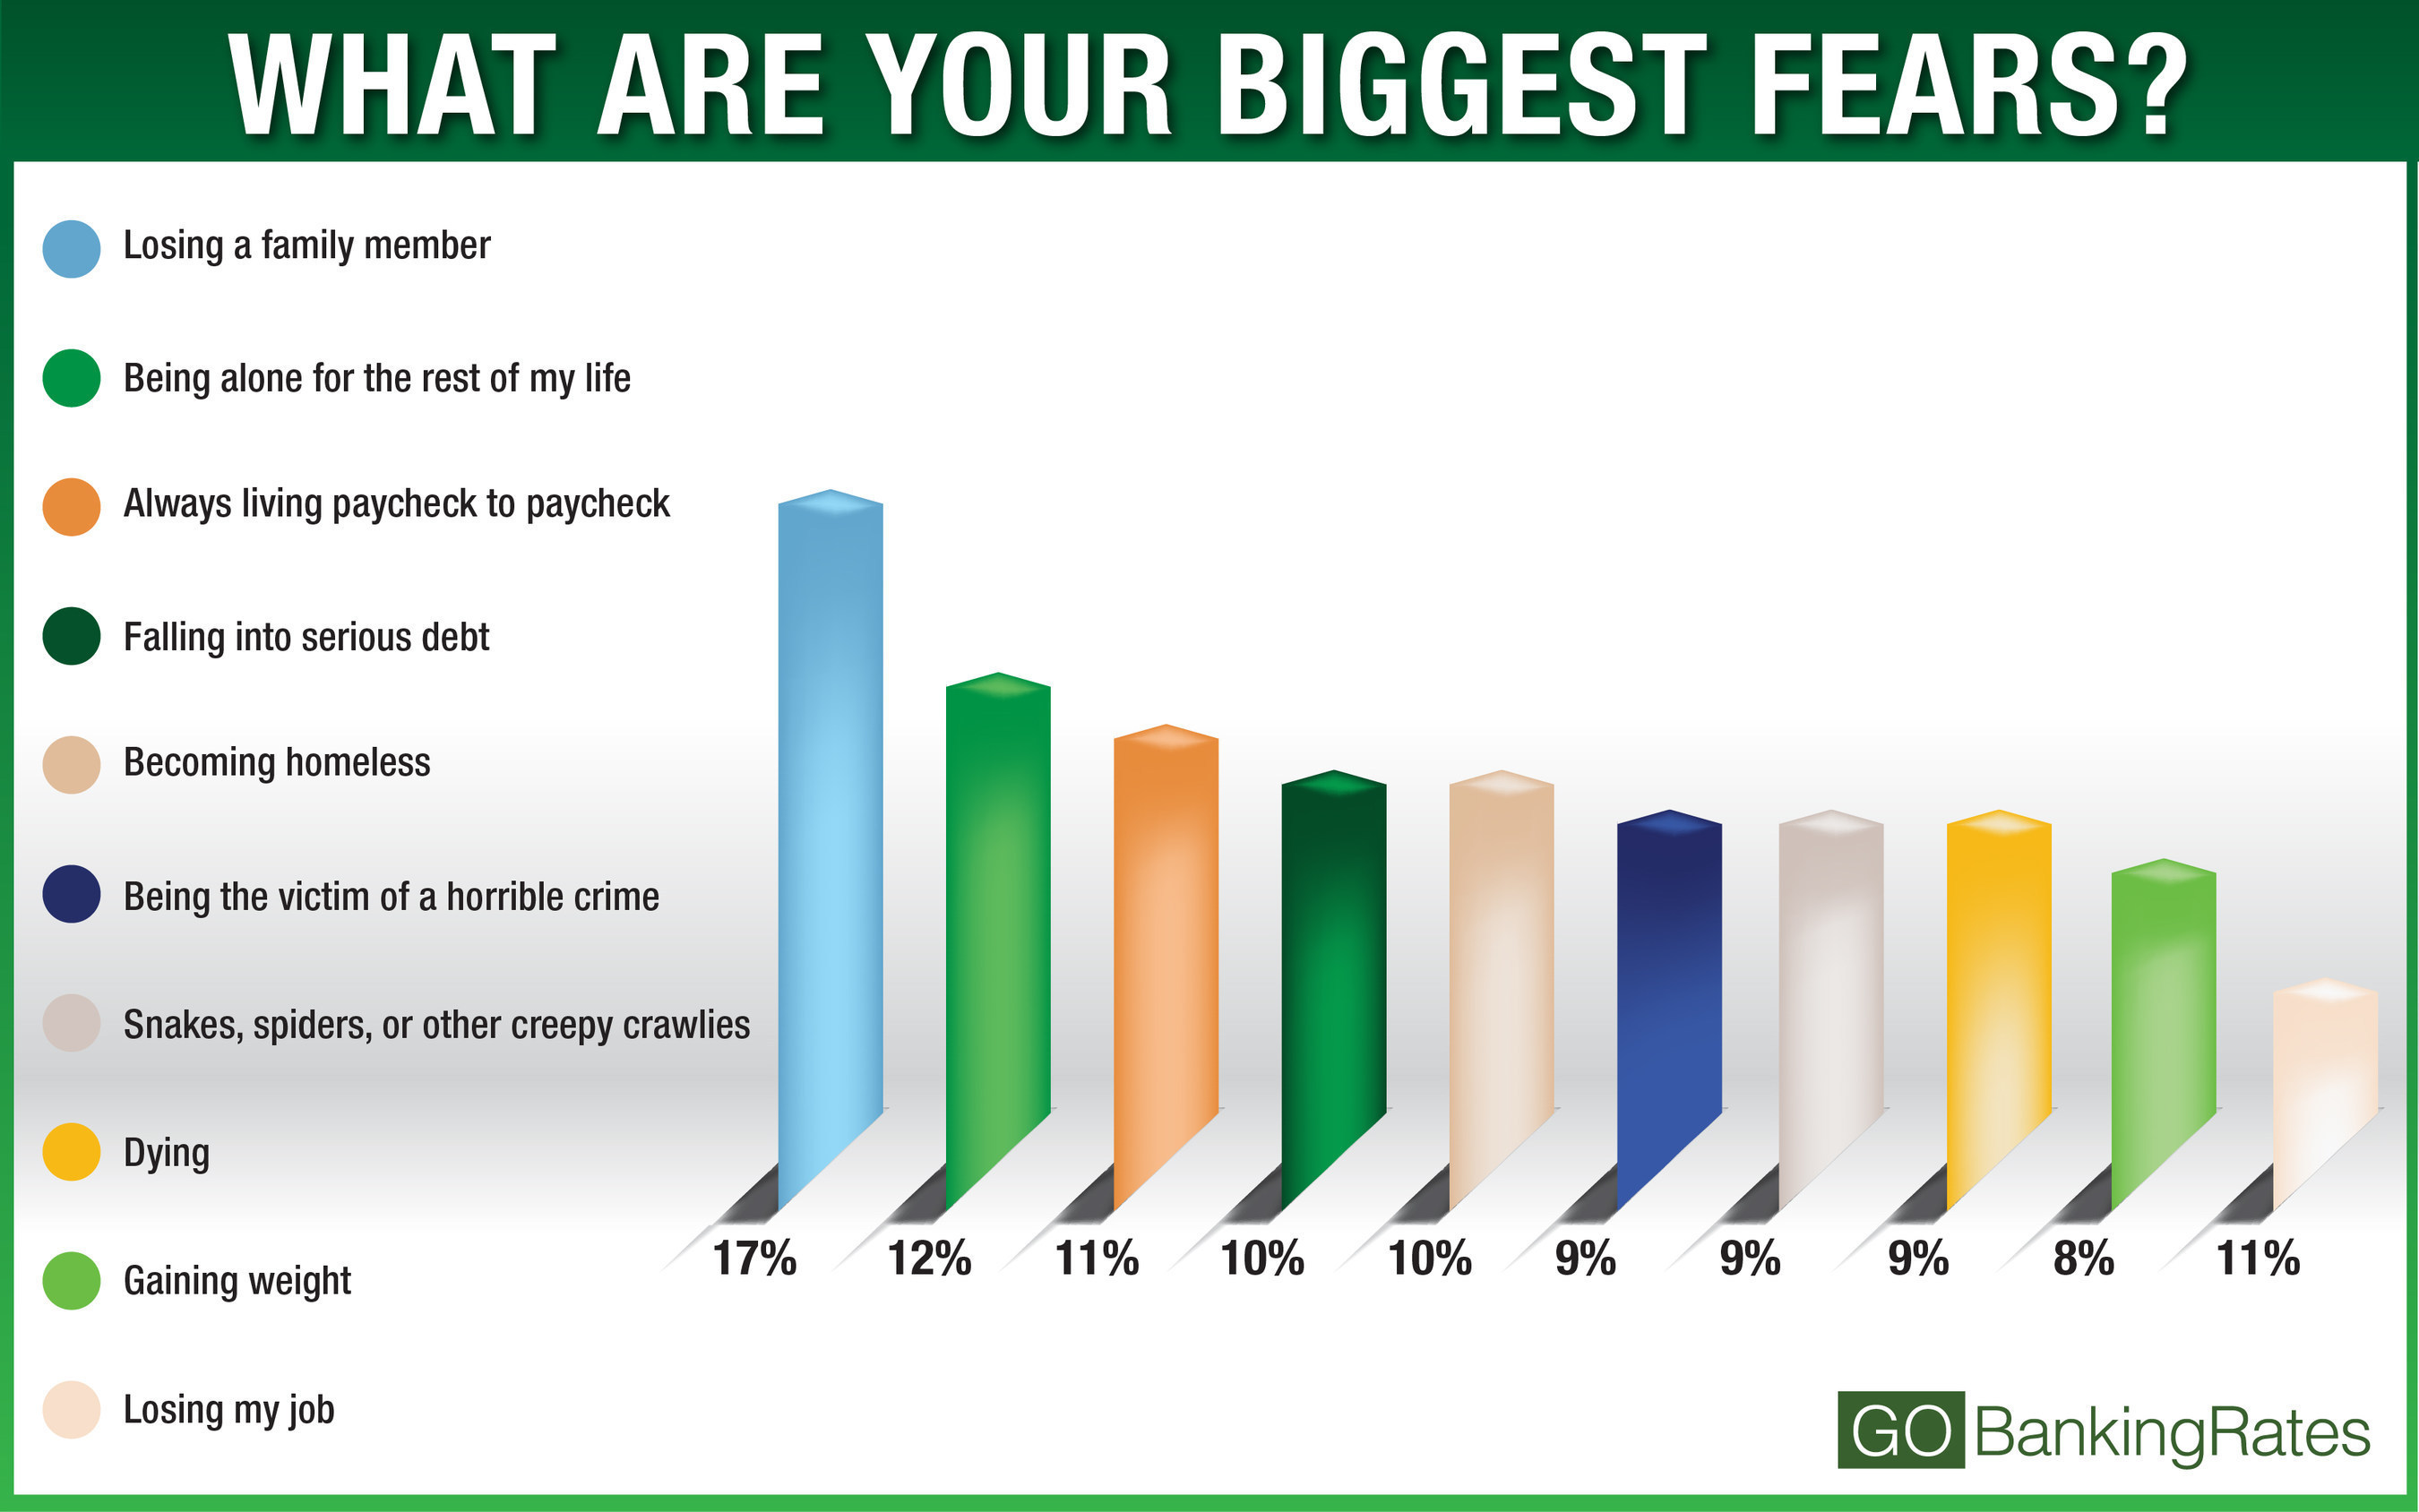 GOBankingRates Study Finds 66% of Americans' Greatest Fears Are About Money. (PRNewsFoto/GOBankingRates)